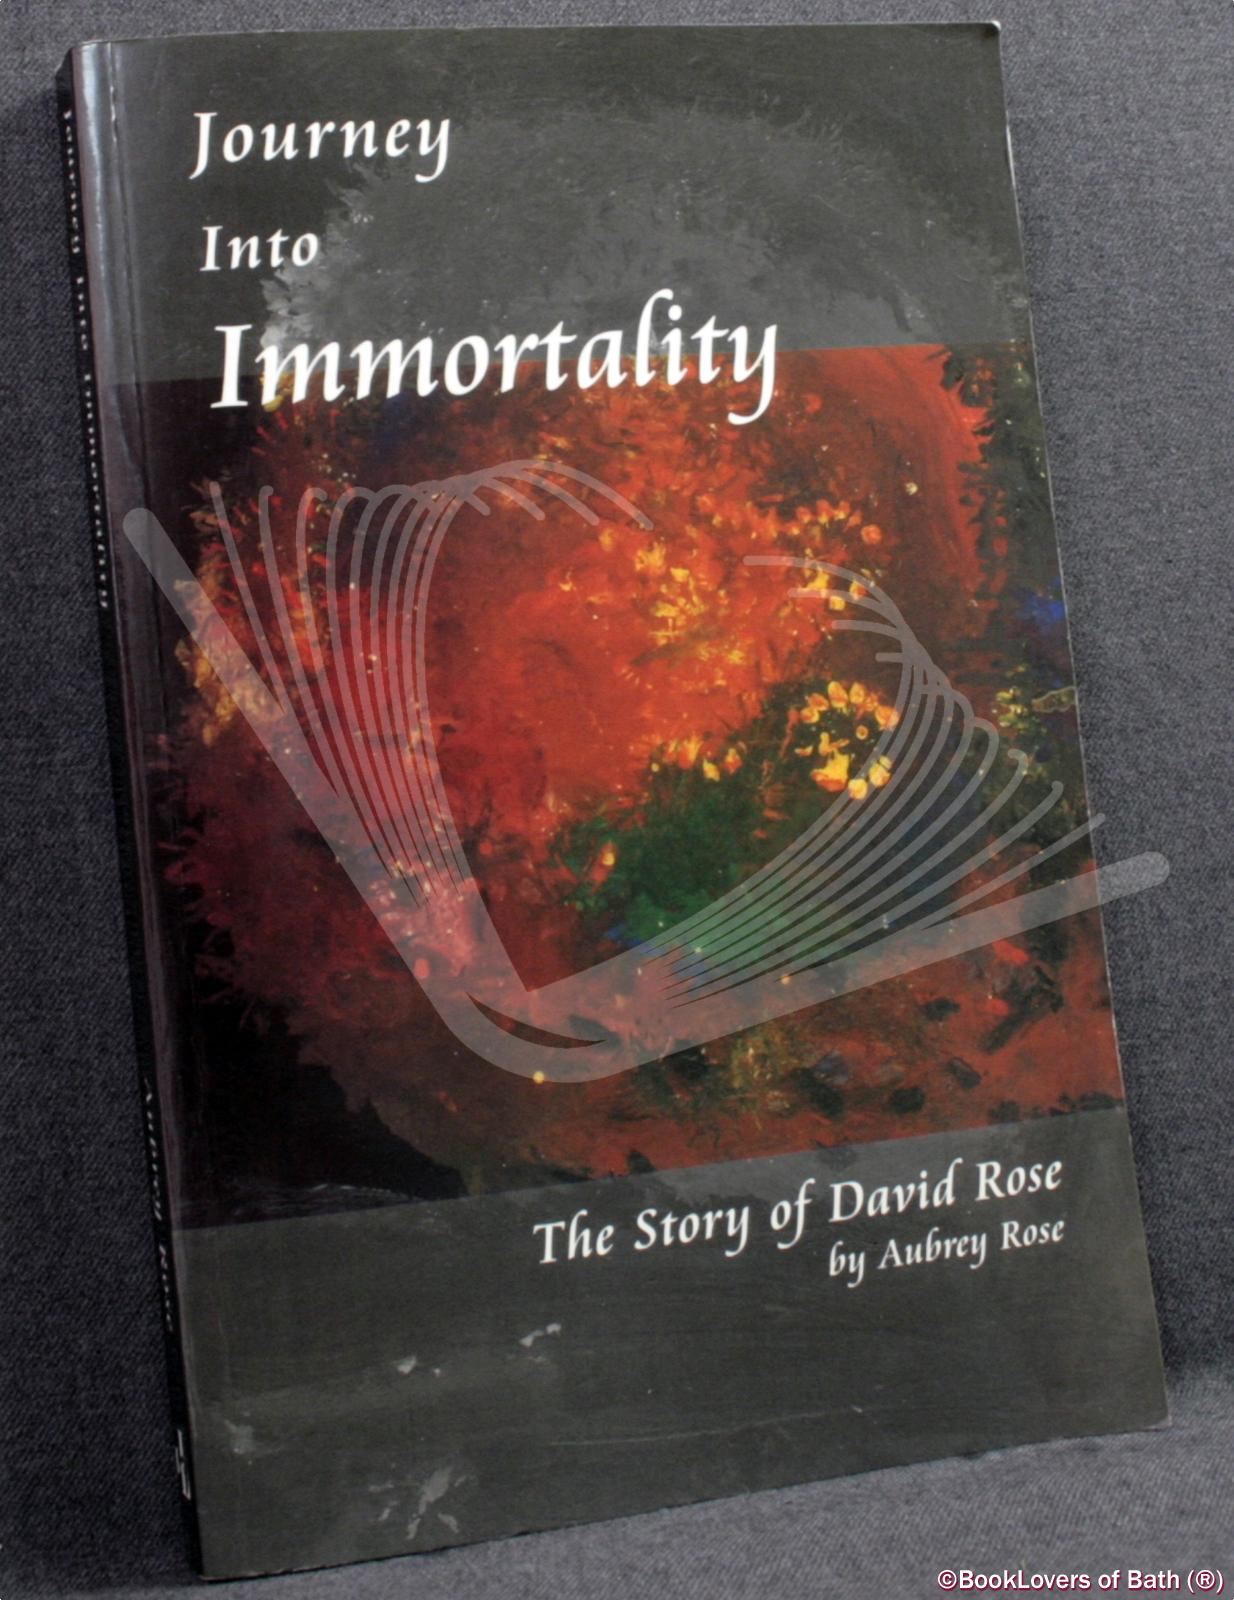 Journey Into Immortality: The Story of David Rose - Aubrey Rose